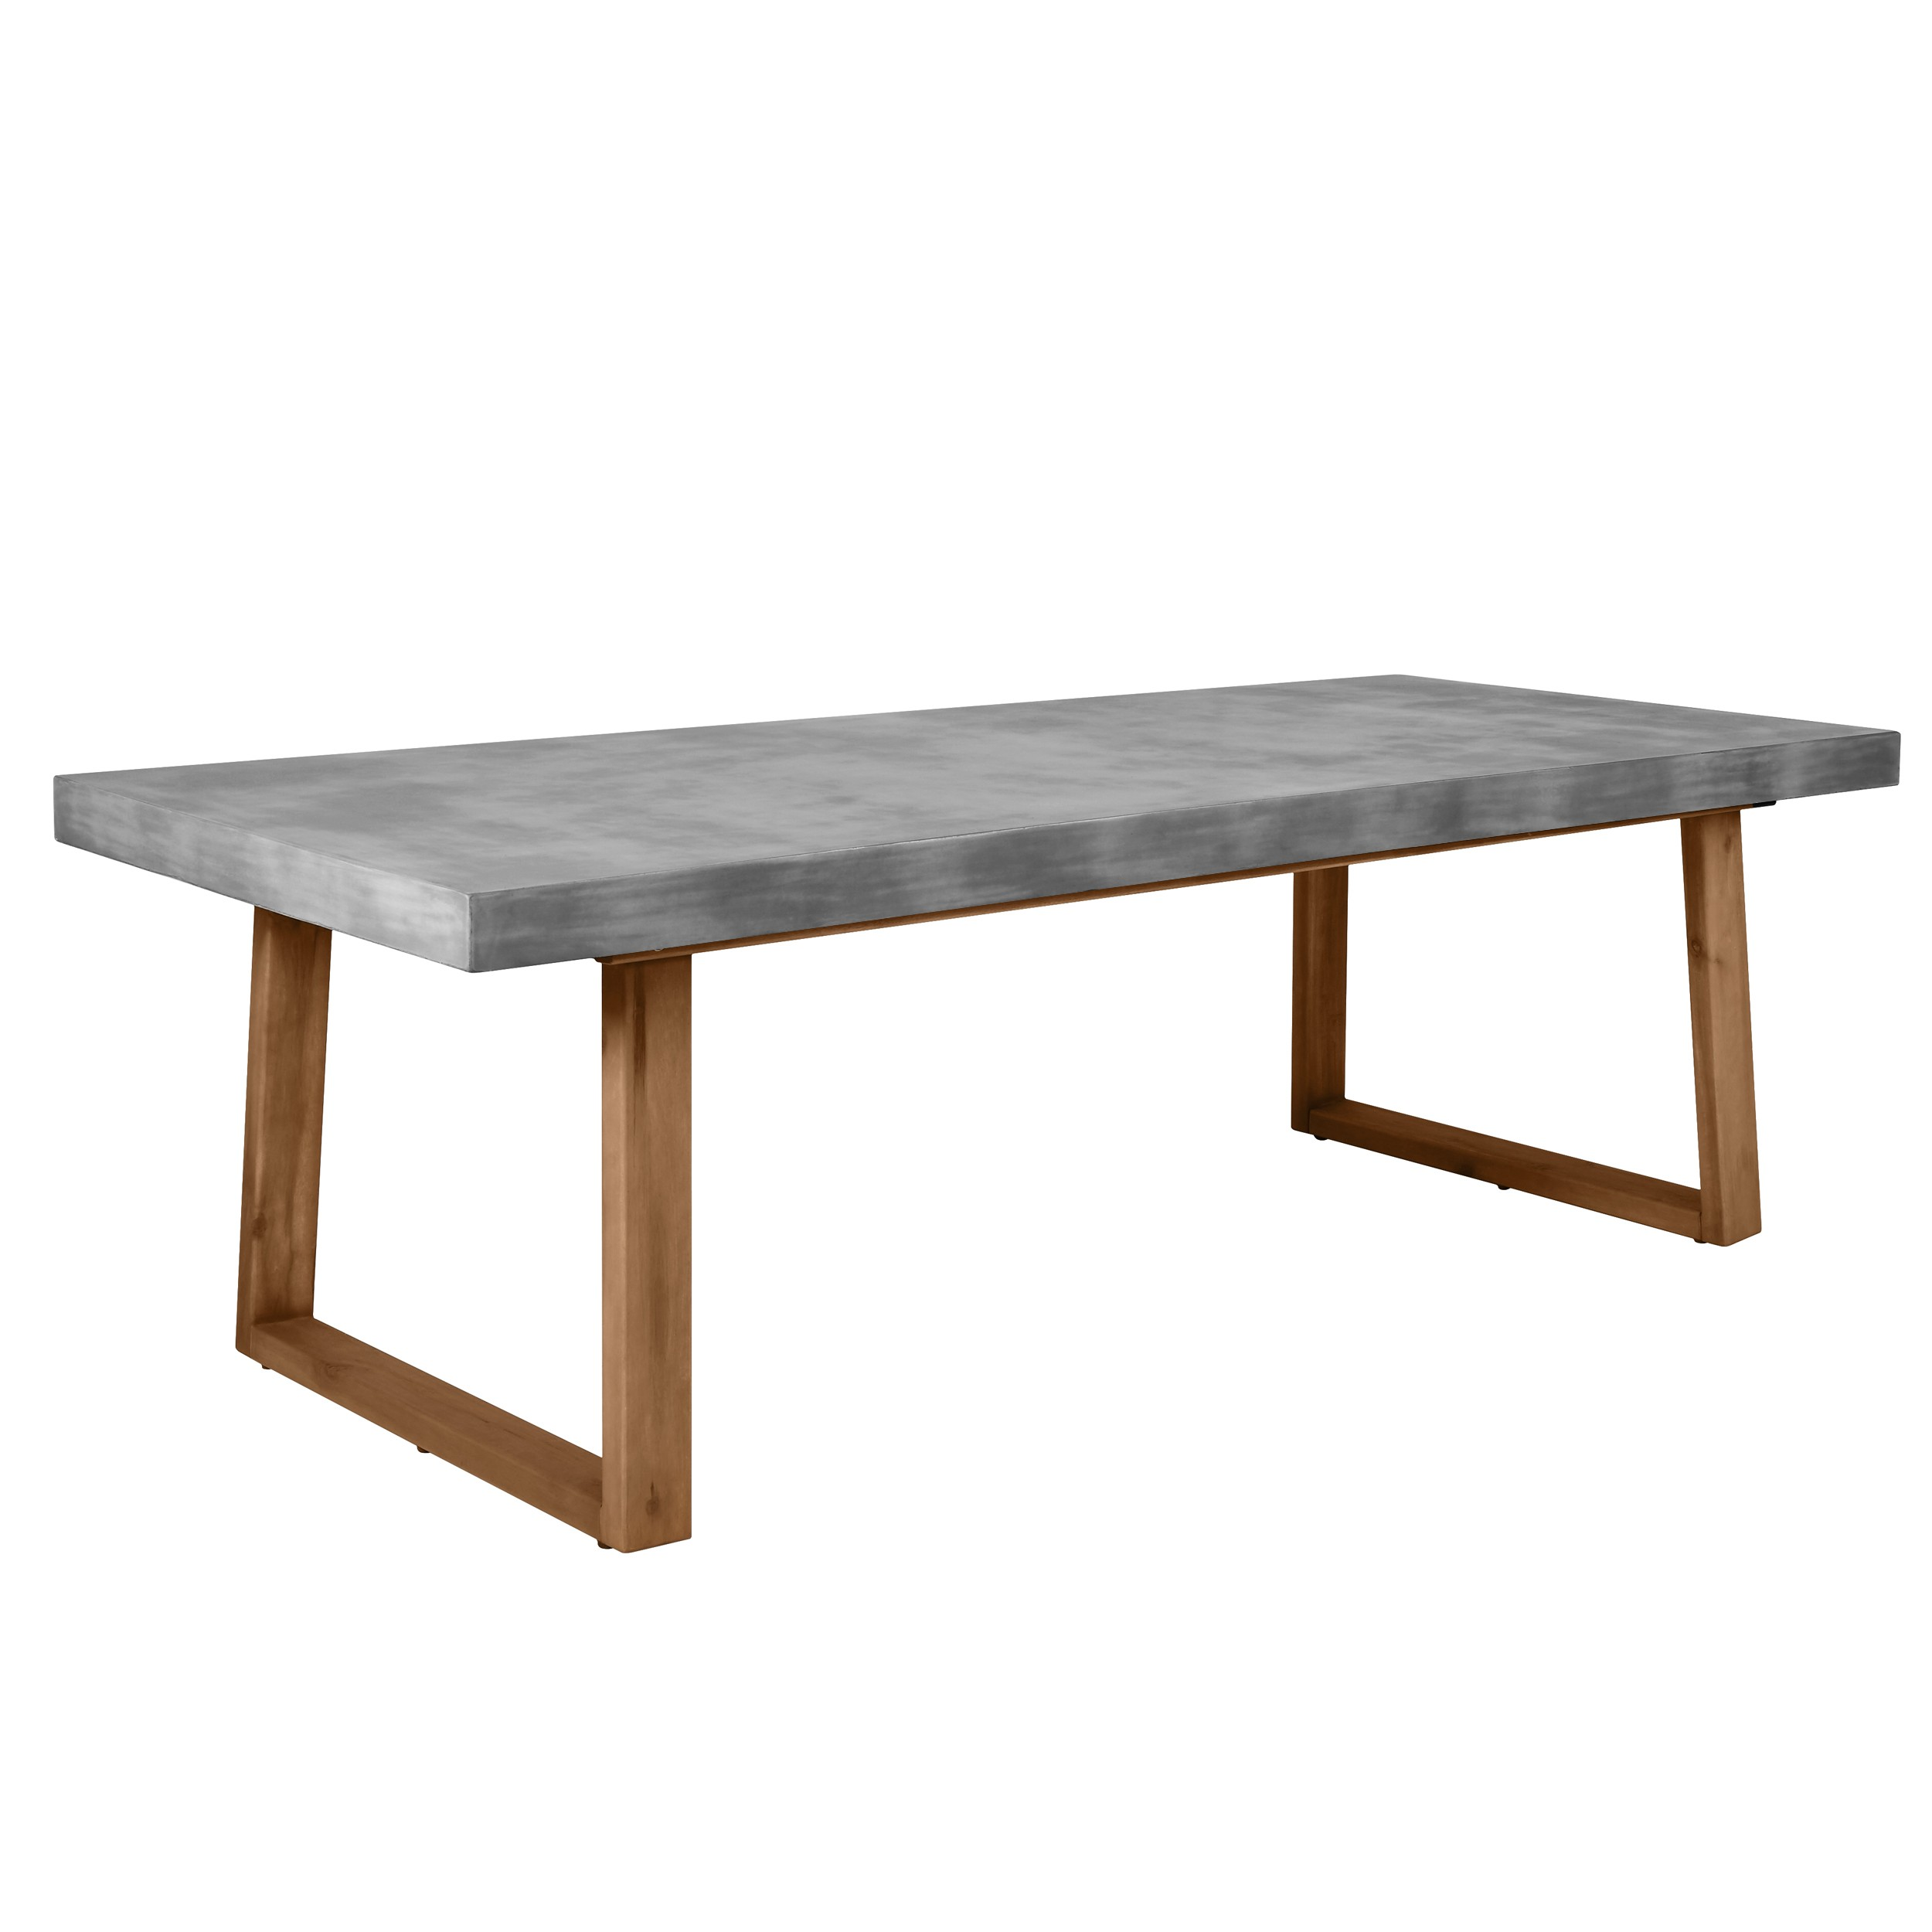 Table Rectangulaire 8 Personnes Table Rectangulaire Carillo 240 Cm En Béton